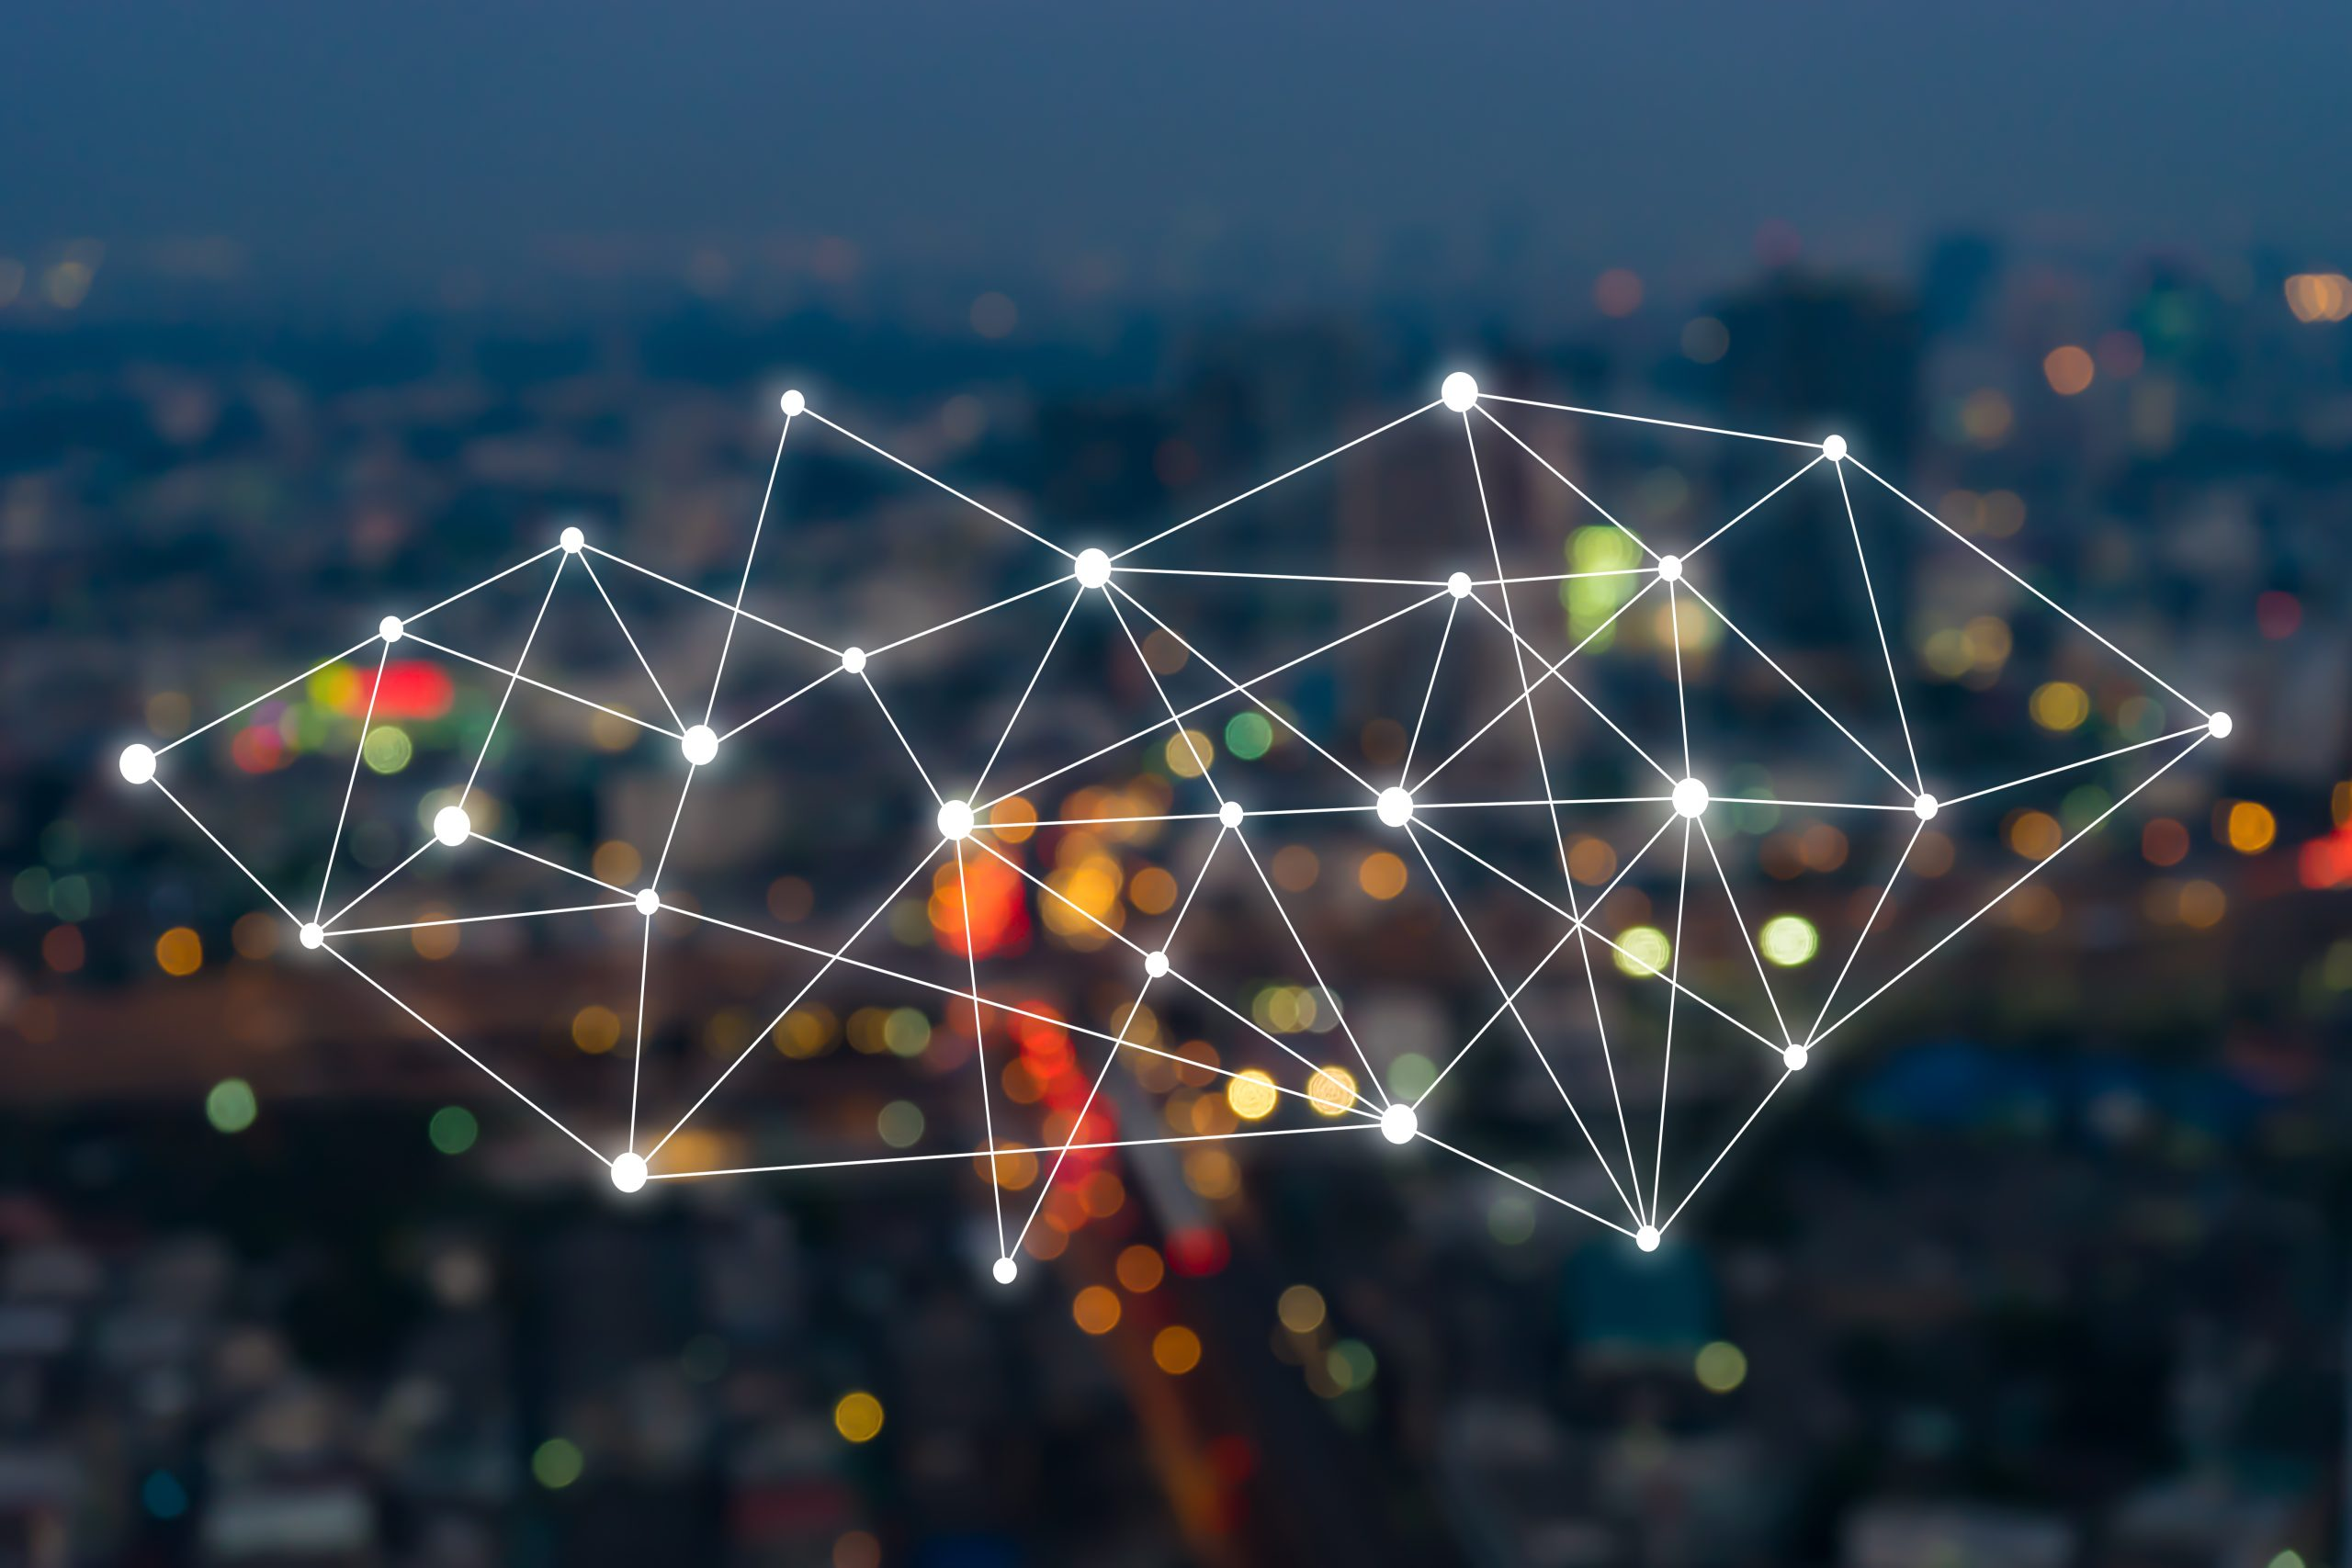 Big data connections. IOT - internet of things. Future technology digital concept on blurred abstract background of world map night city scape